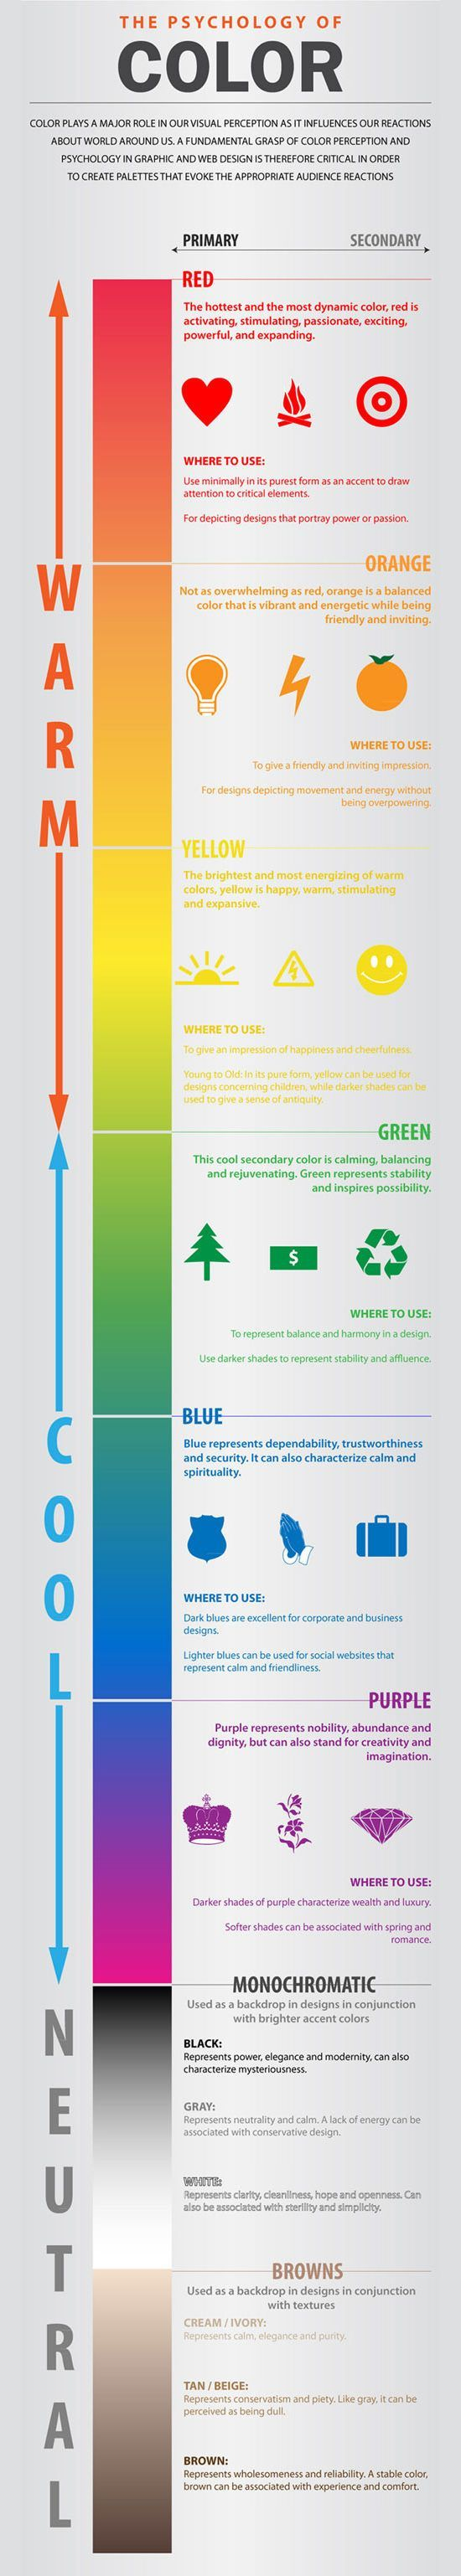 Cool colors web design - 30 Cheatsheets Infographics For Graphic Designers